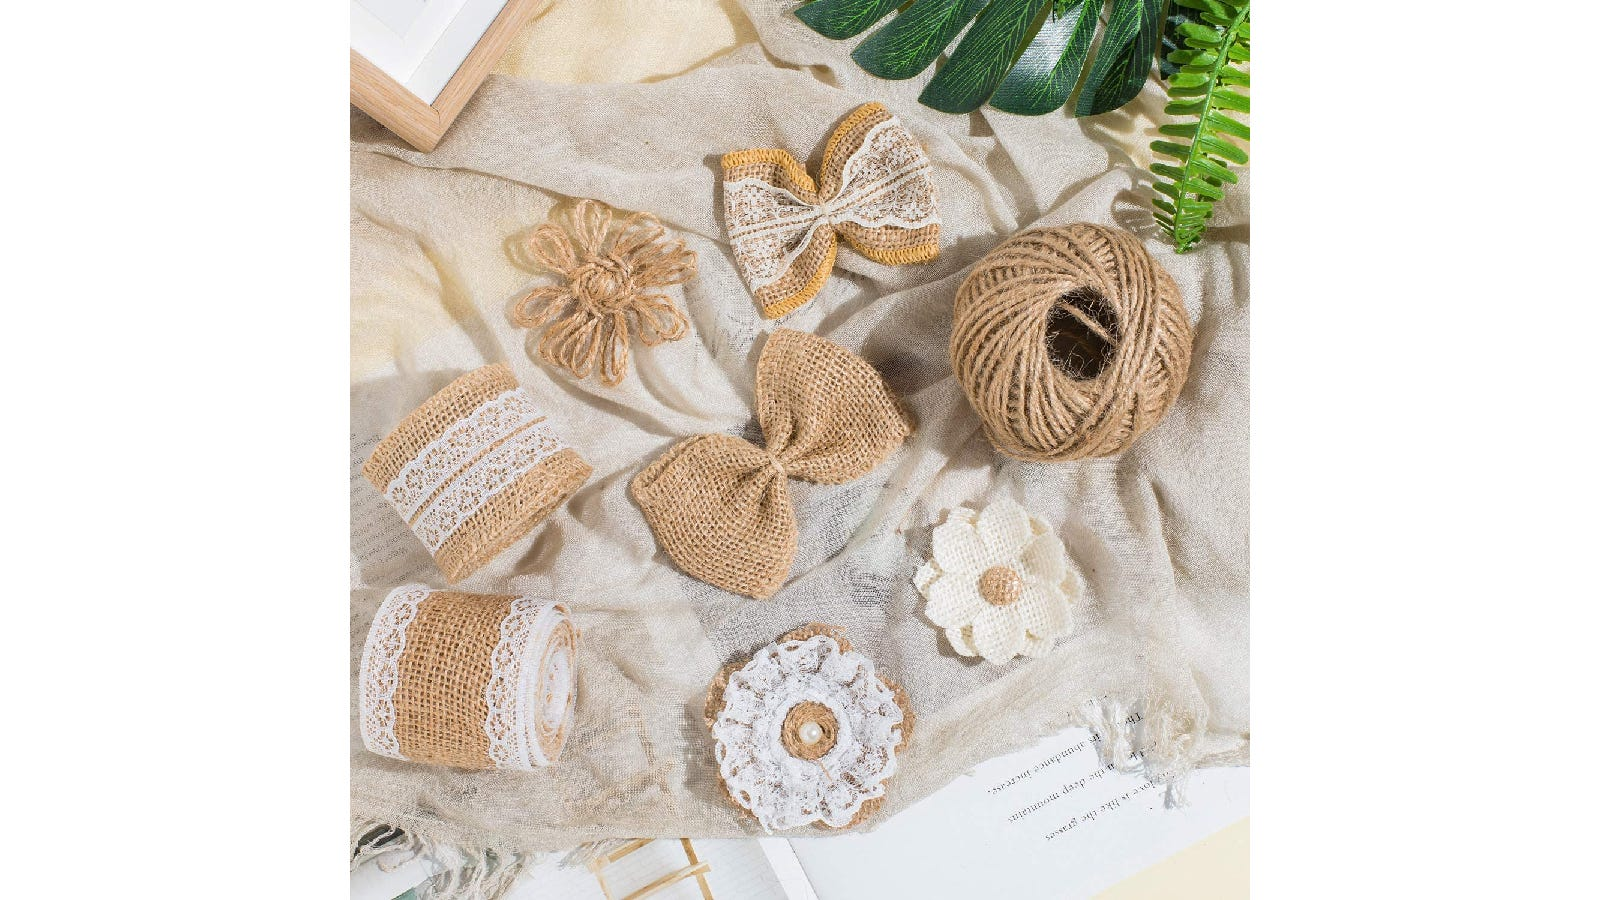 burlap and lace ribbons, flowers, and bows on a burlap sack background